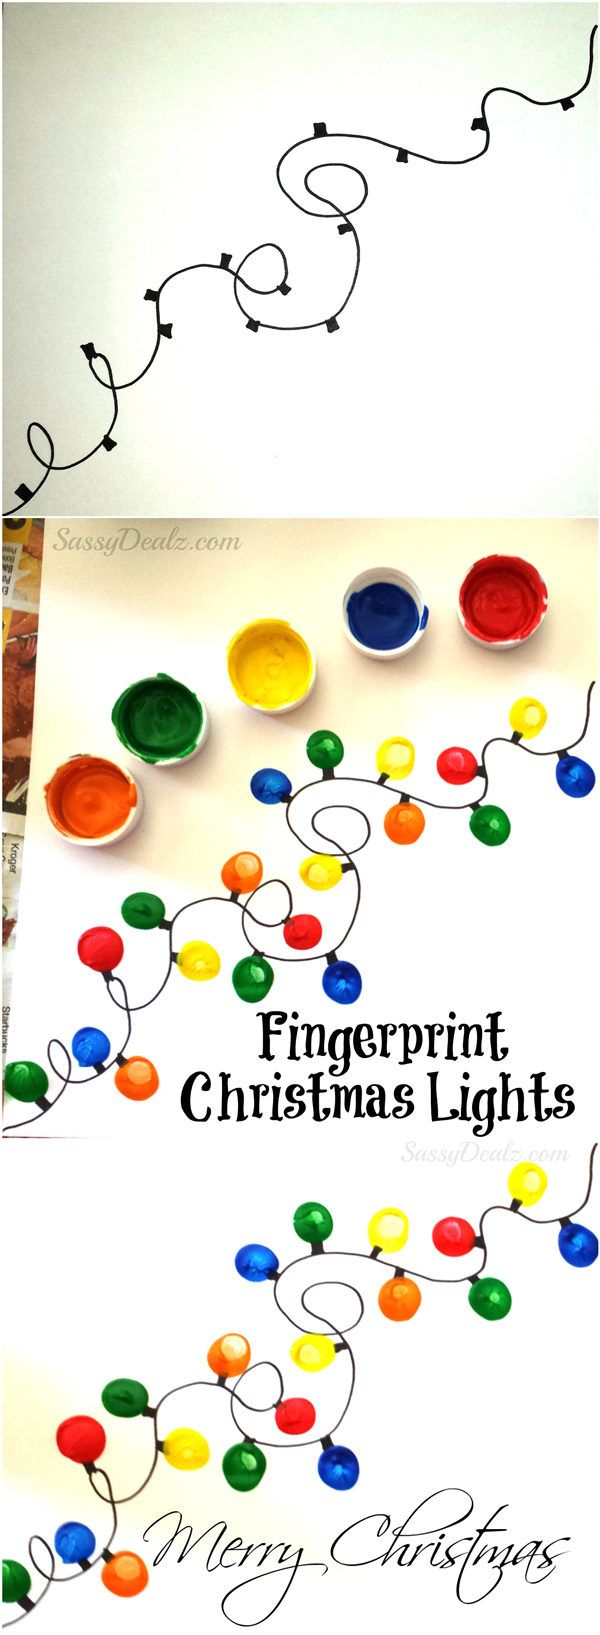 Fingerprint Christmas Light